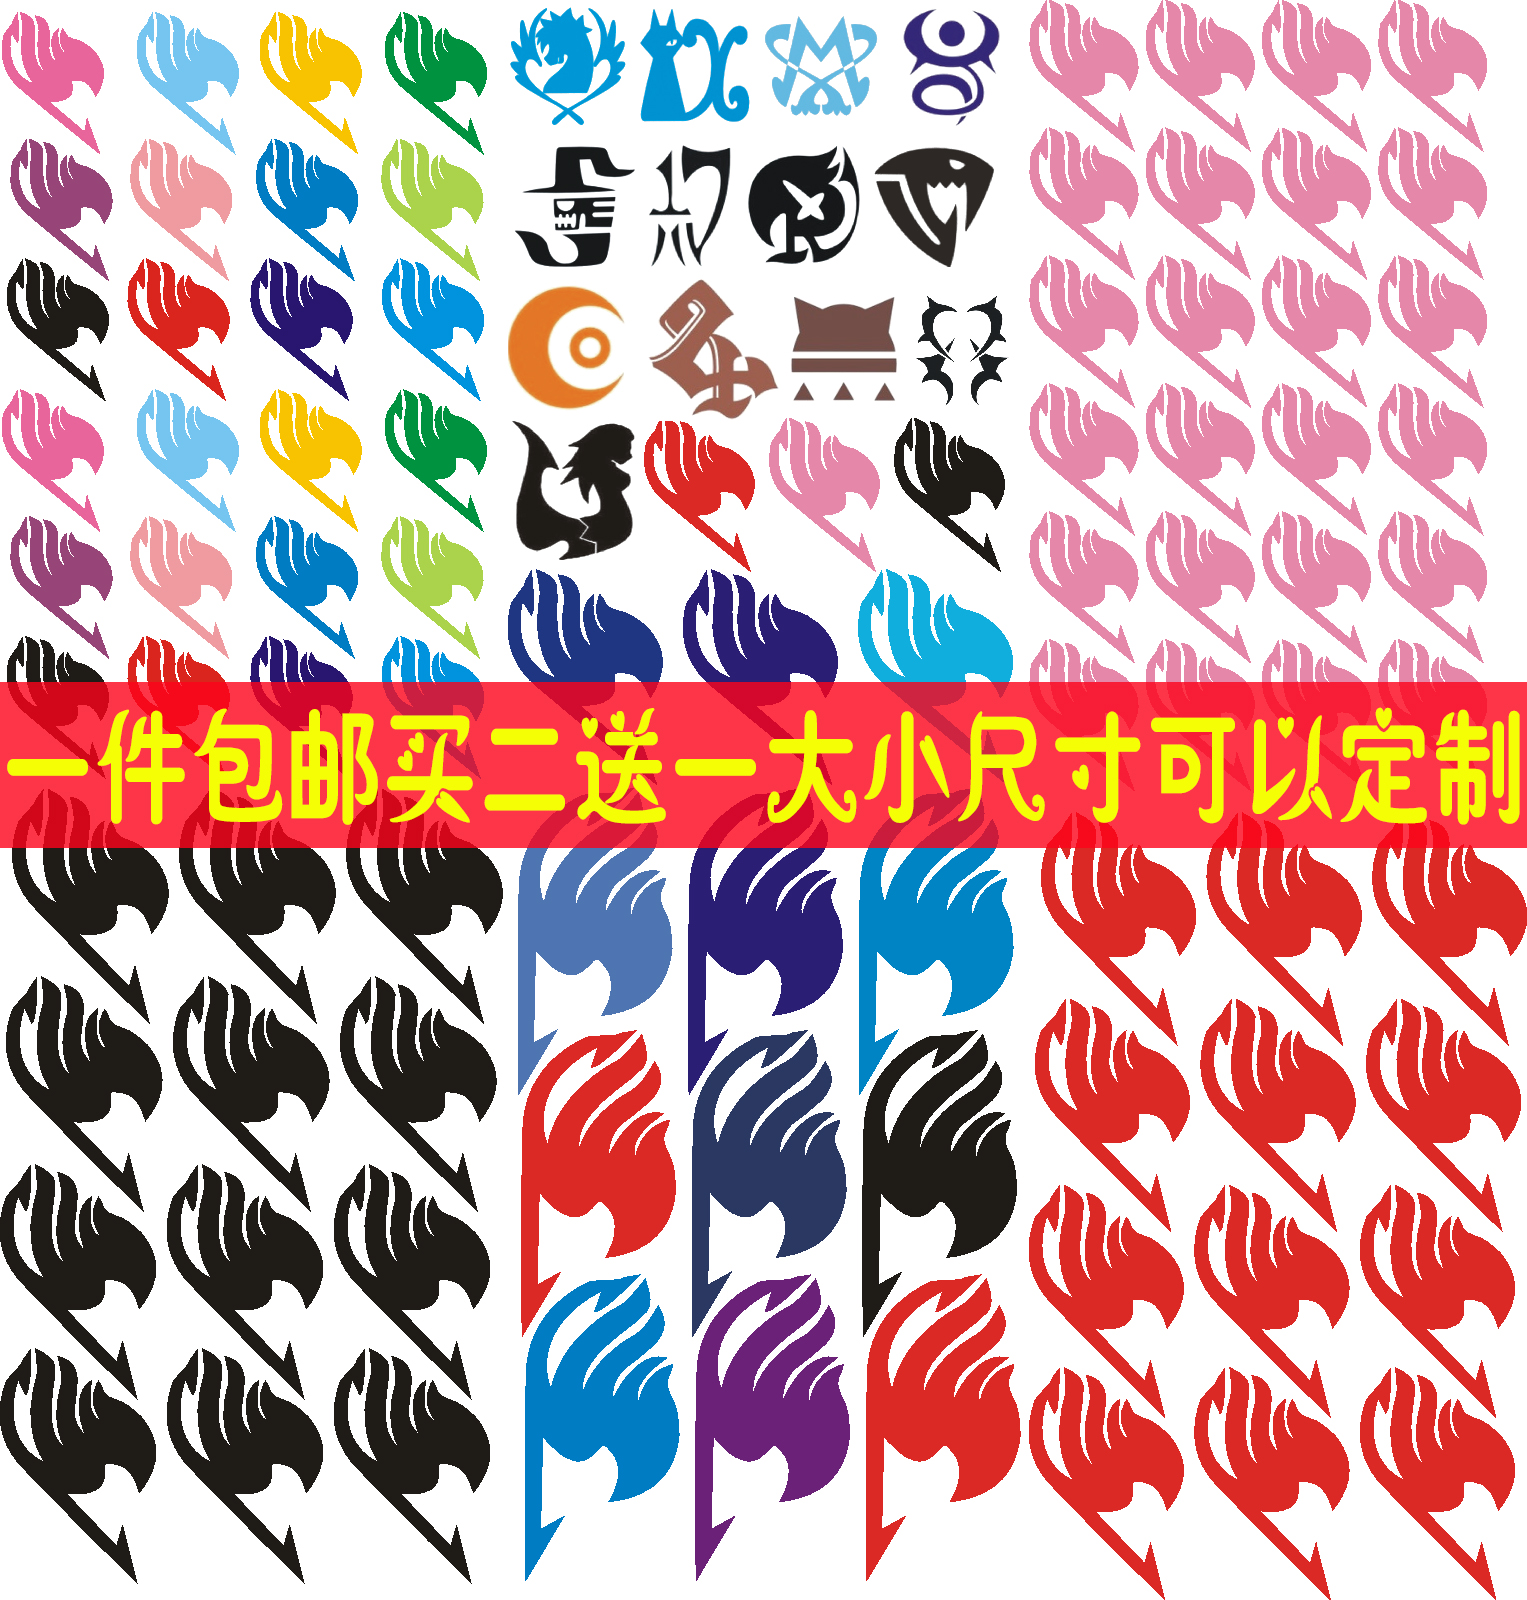 340e6e1a2 Anime Fairy Tail Naz Lucy Elisha demon Tail guild logo COS tattoo stickers